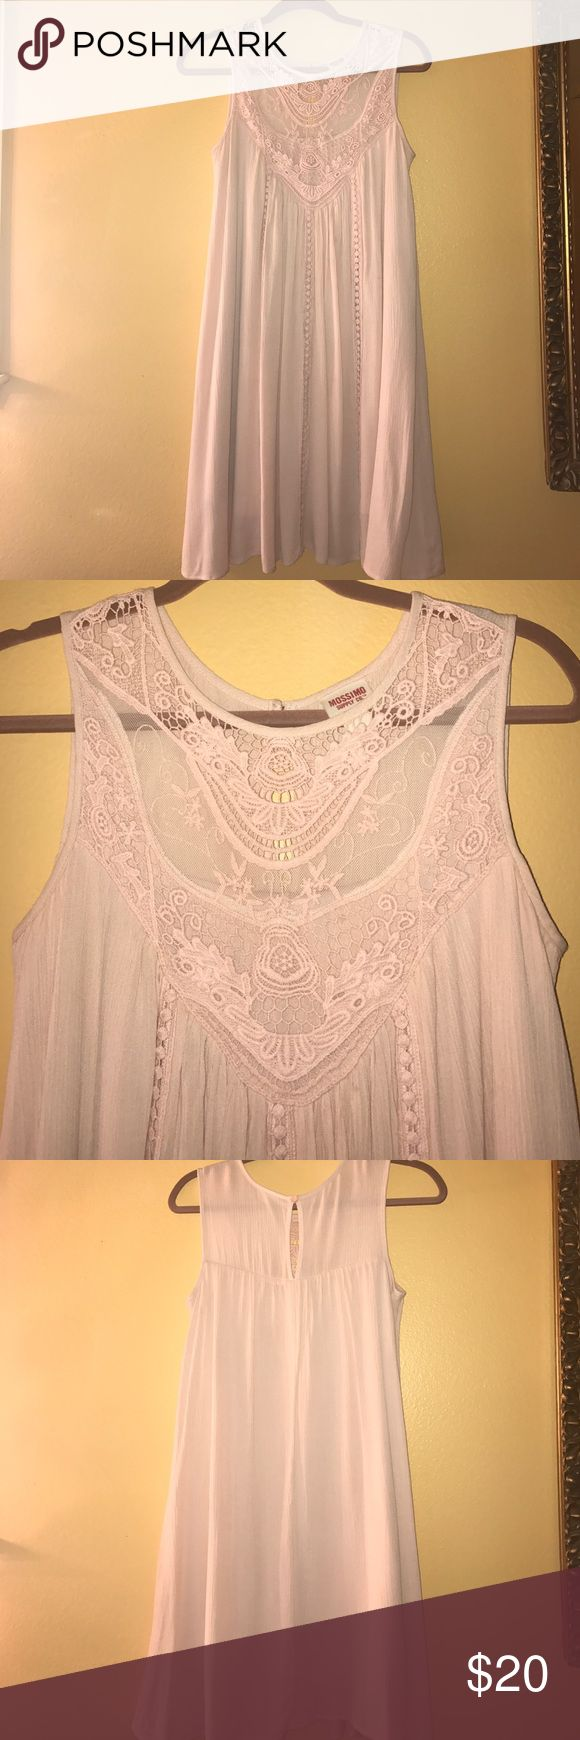 Mossimo Lace Dress Beautiful blush pink lace dress! A little too long on me but perfect for any spring or summer occasion! Mossimo Supply Co Dresses